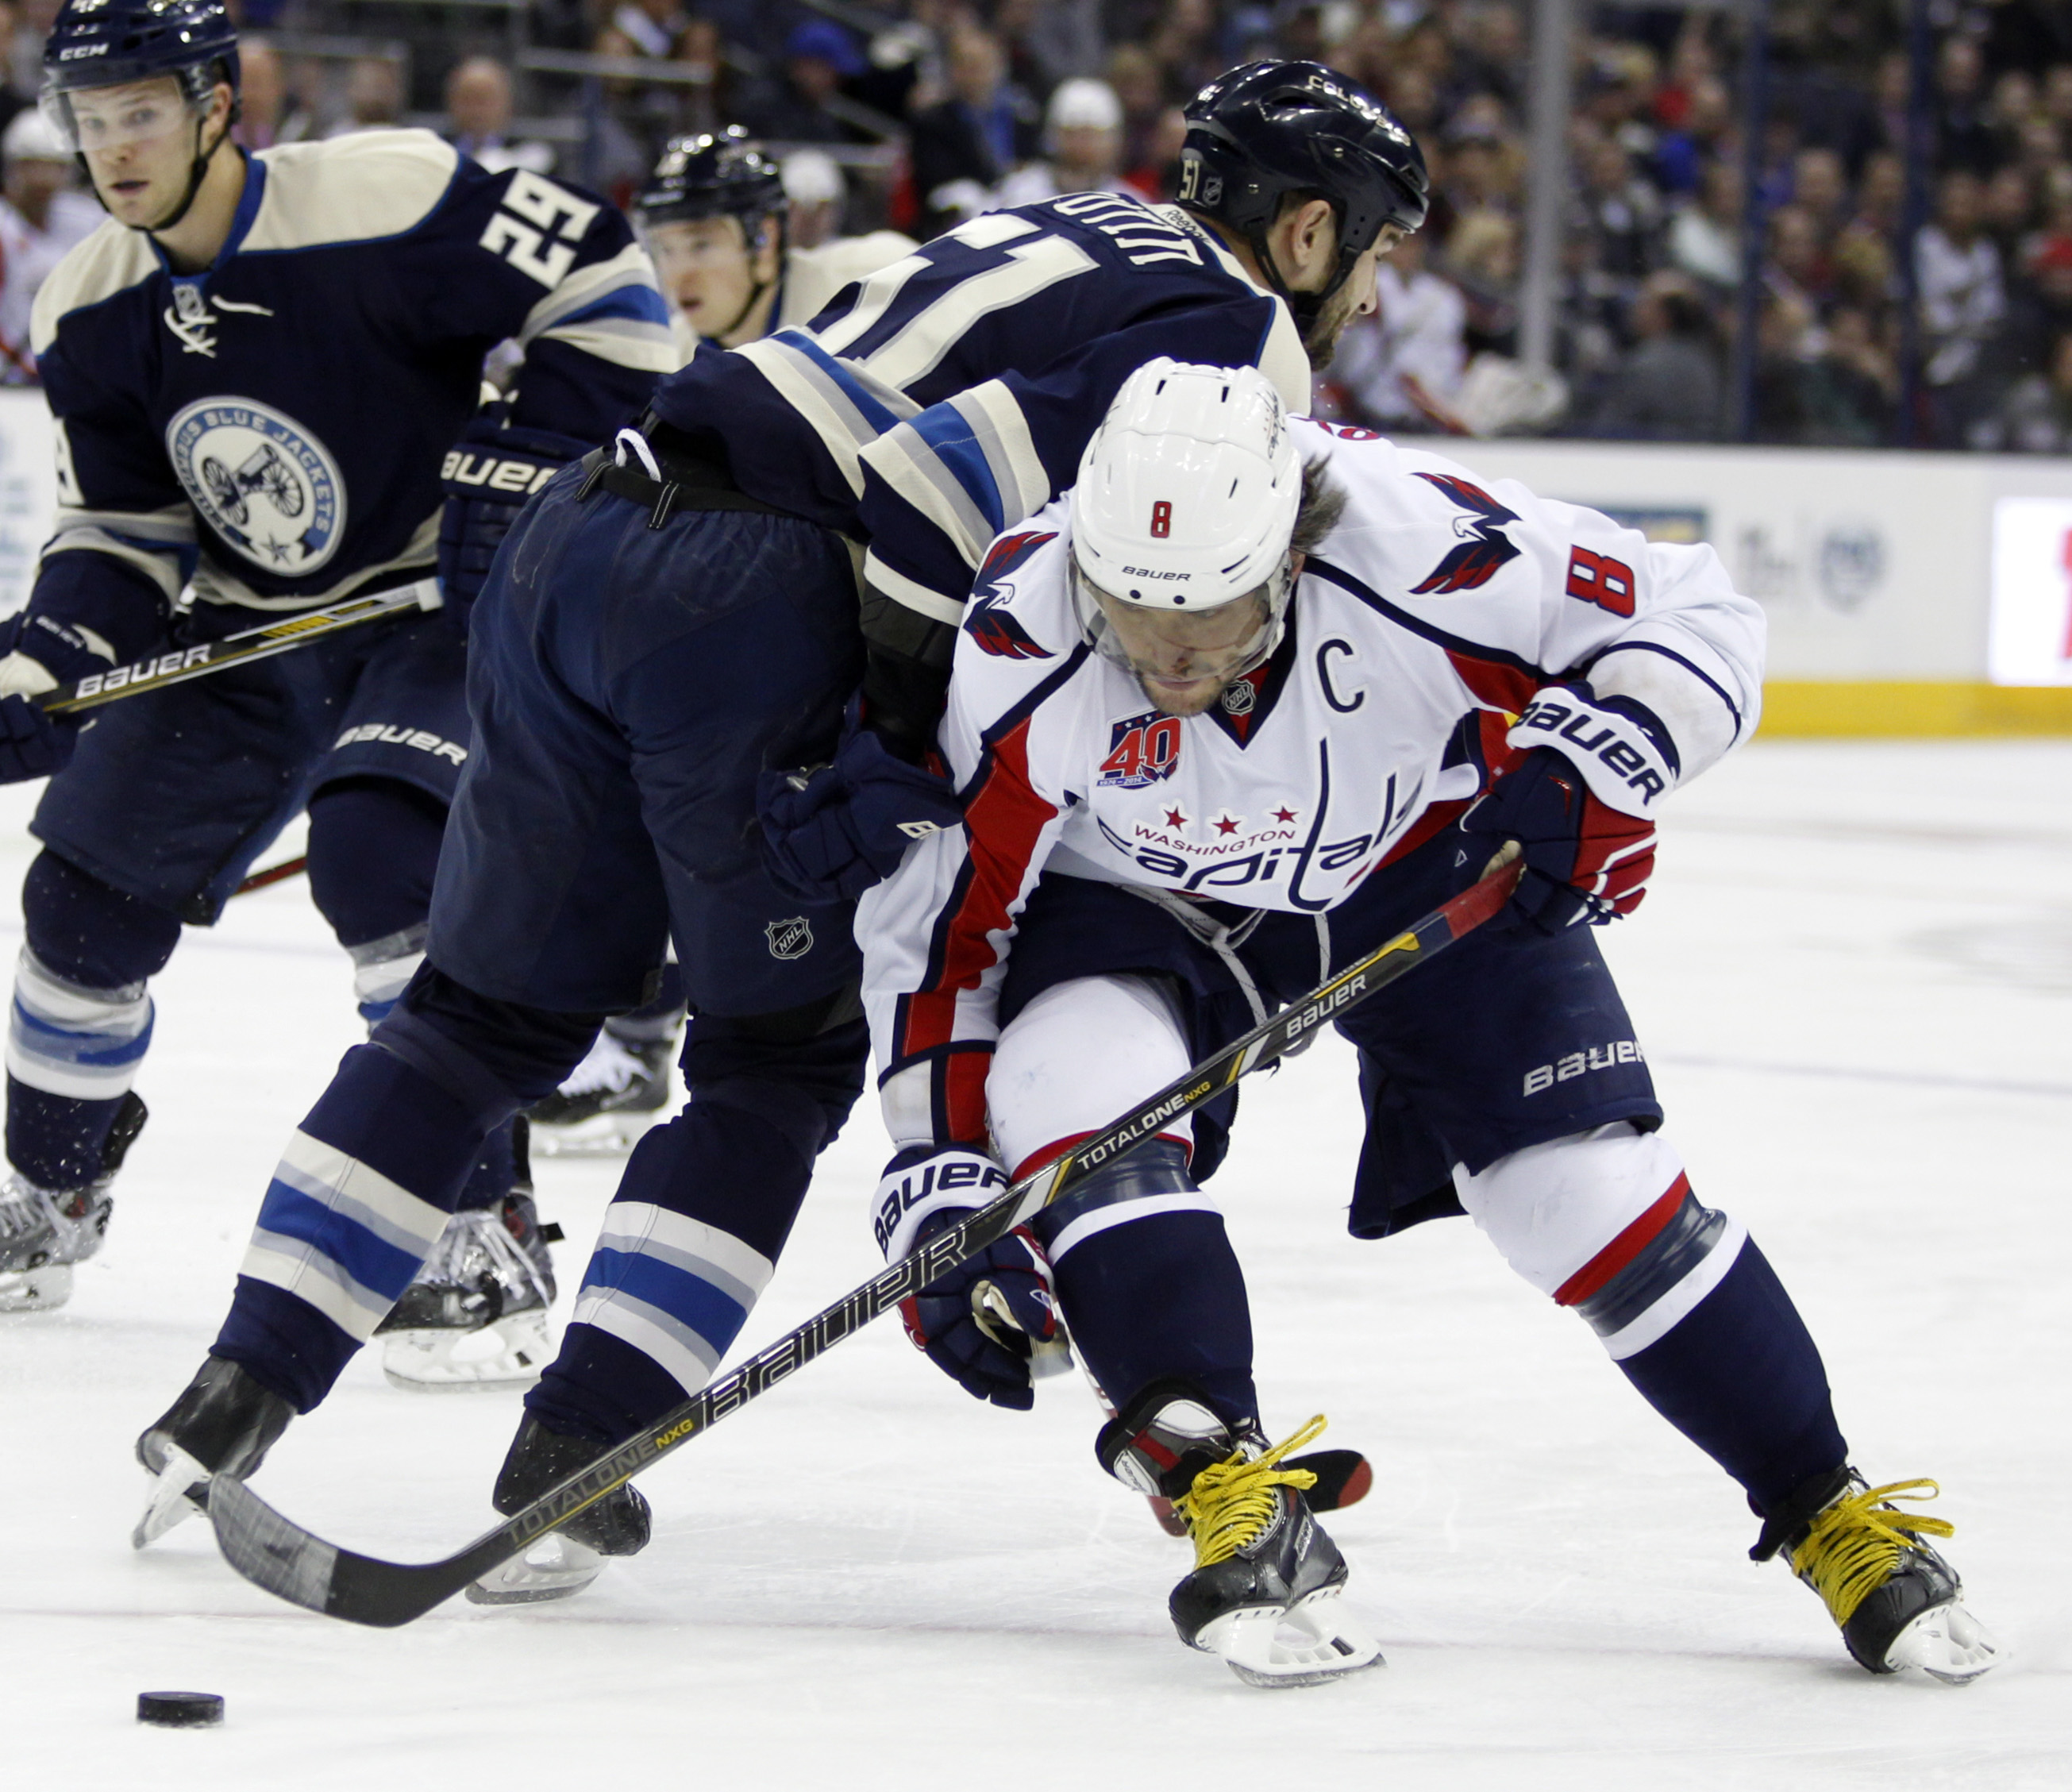 Ovechkin&39s 2 goals lift Capitals past Blue Jackets 5-3 | WTOP